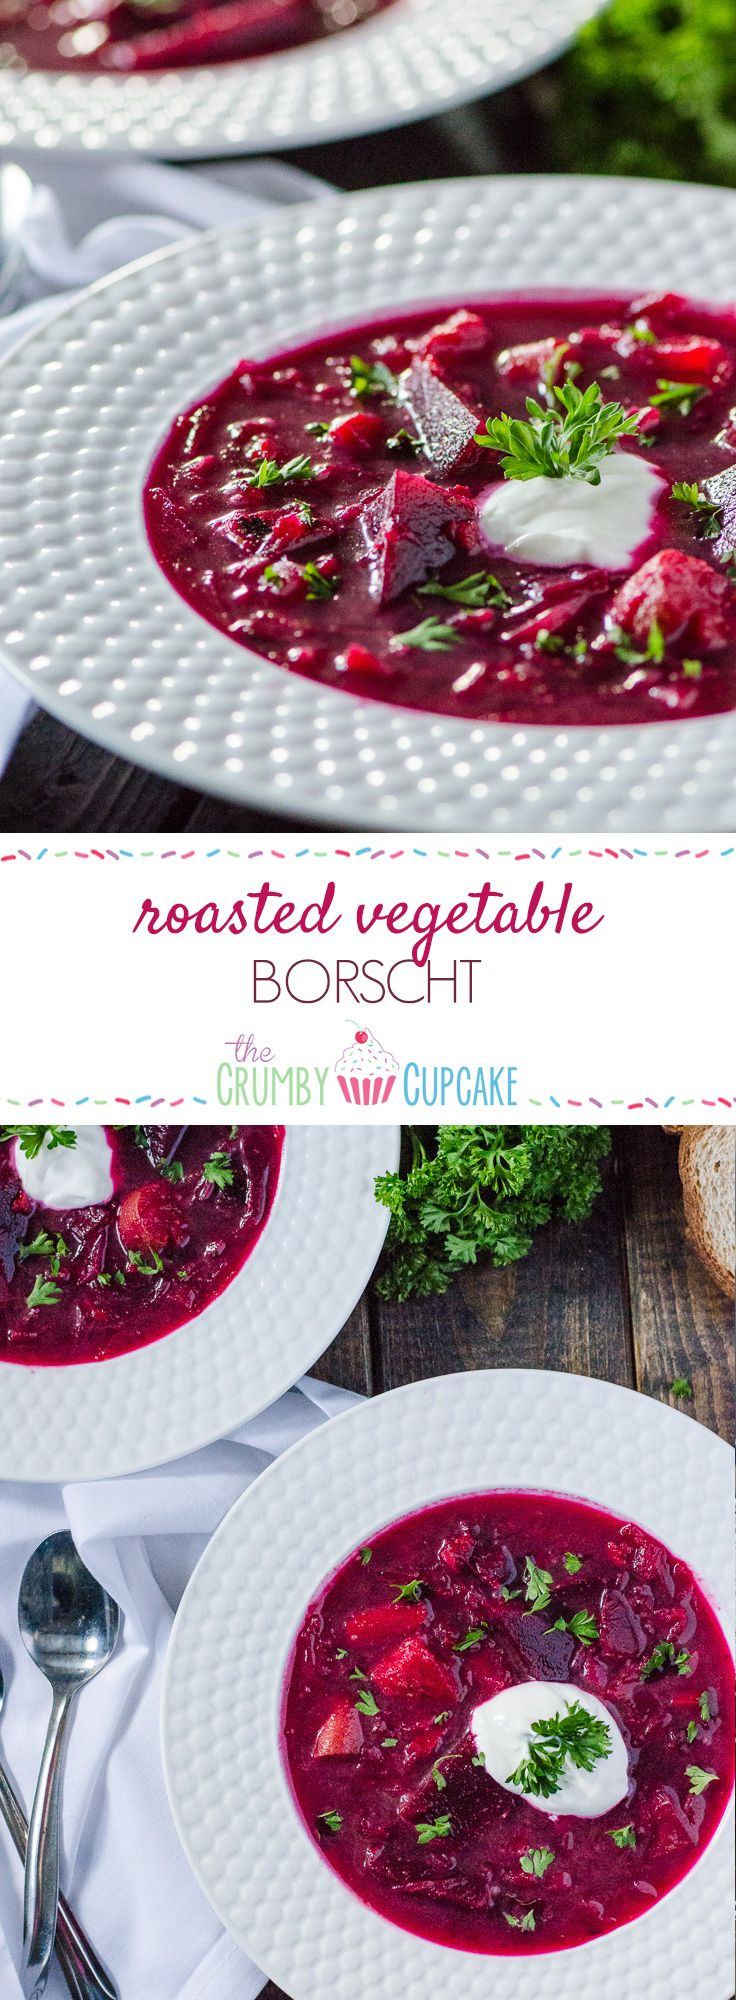 Roasted Vegetable Borscht | A traditional sweet and sour Ukrainian beet soup, enhanced with roasted vegetables, caramelized onions and leeks, all wrapped up in a brightly-colored broth - incredibly healthy and tasty to boot! #SundaySupper